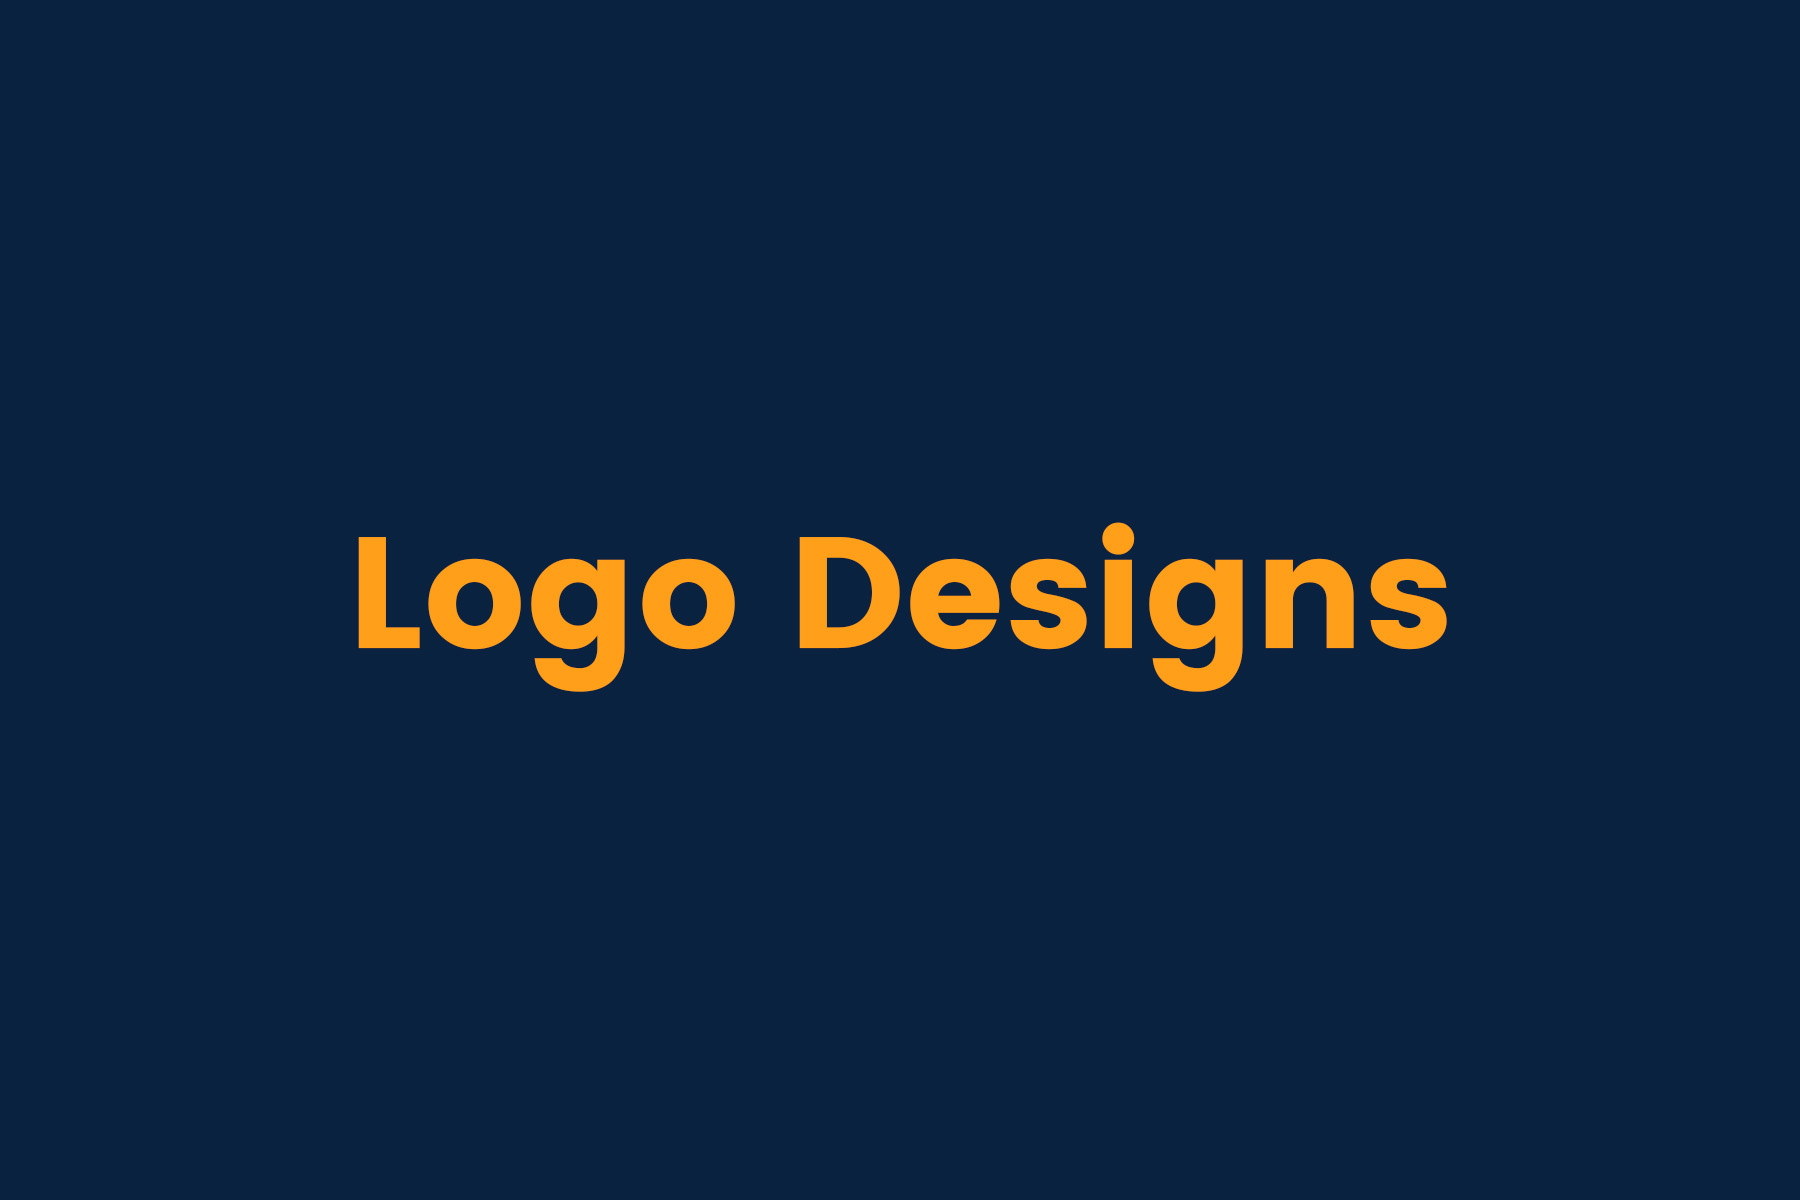 Logo Design Series 1